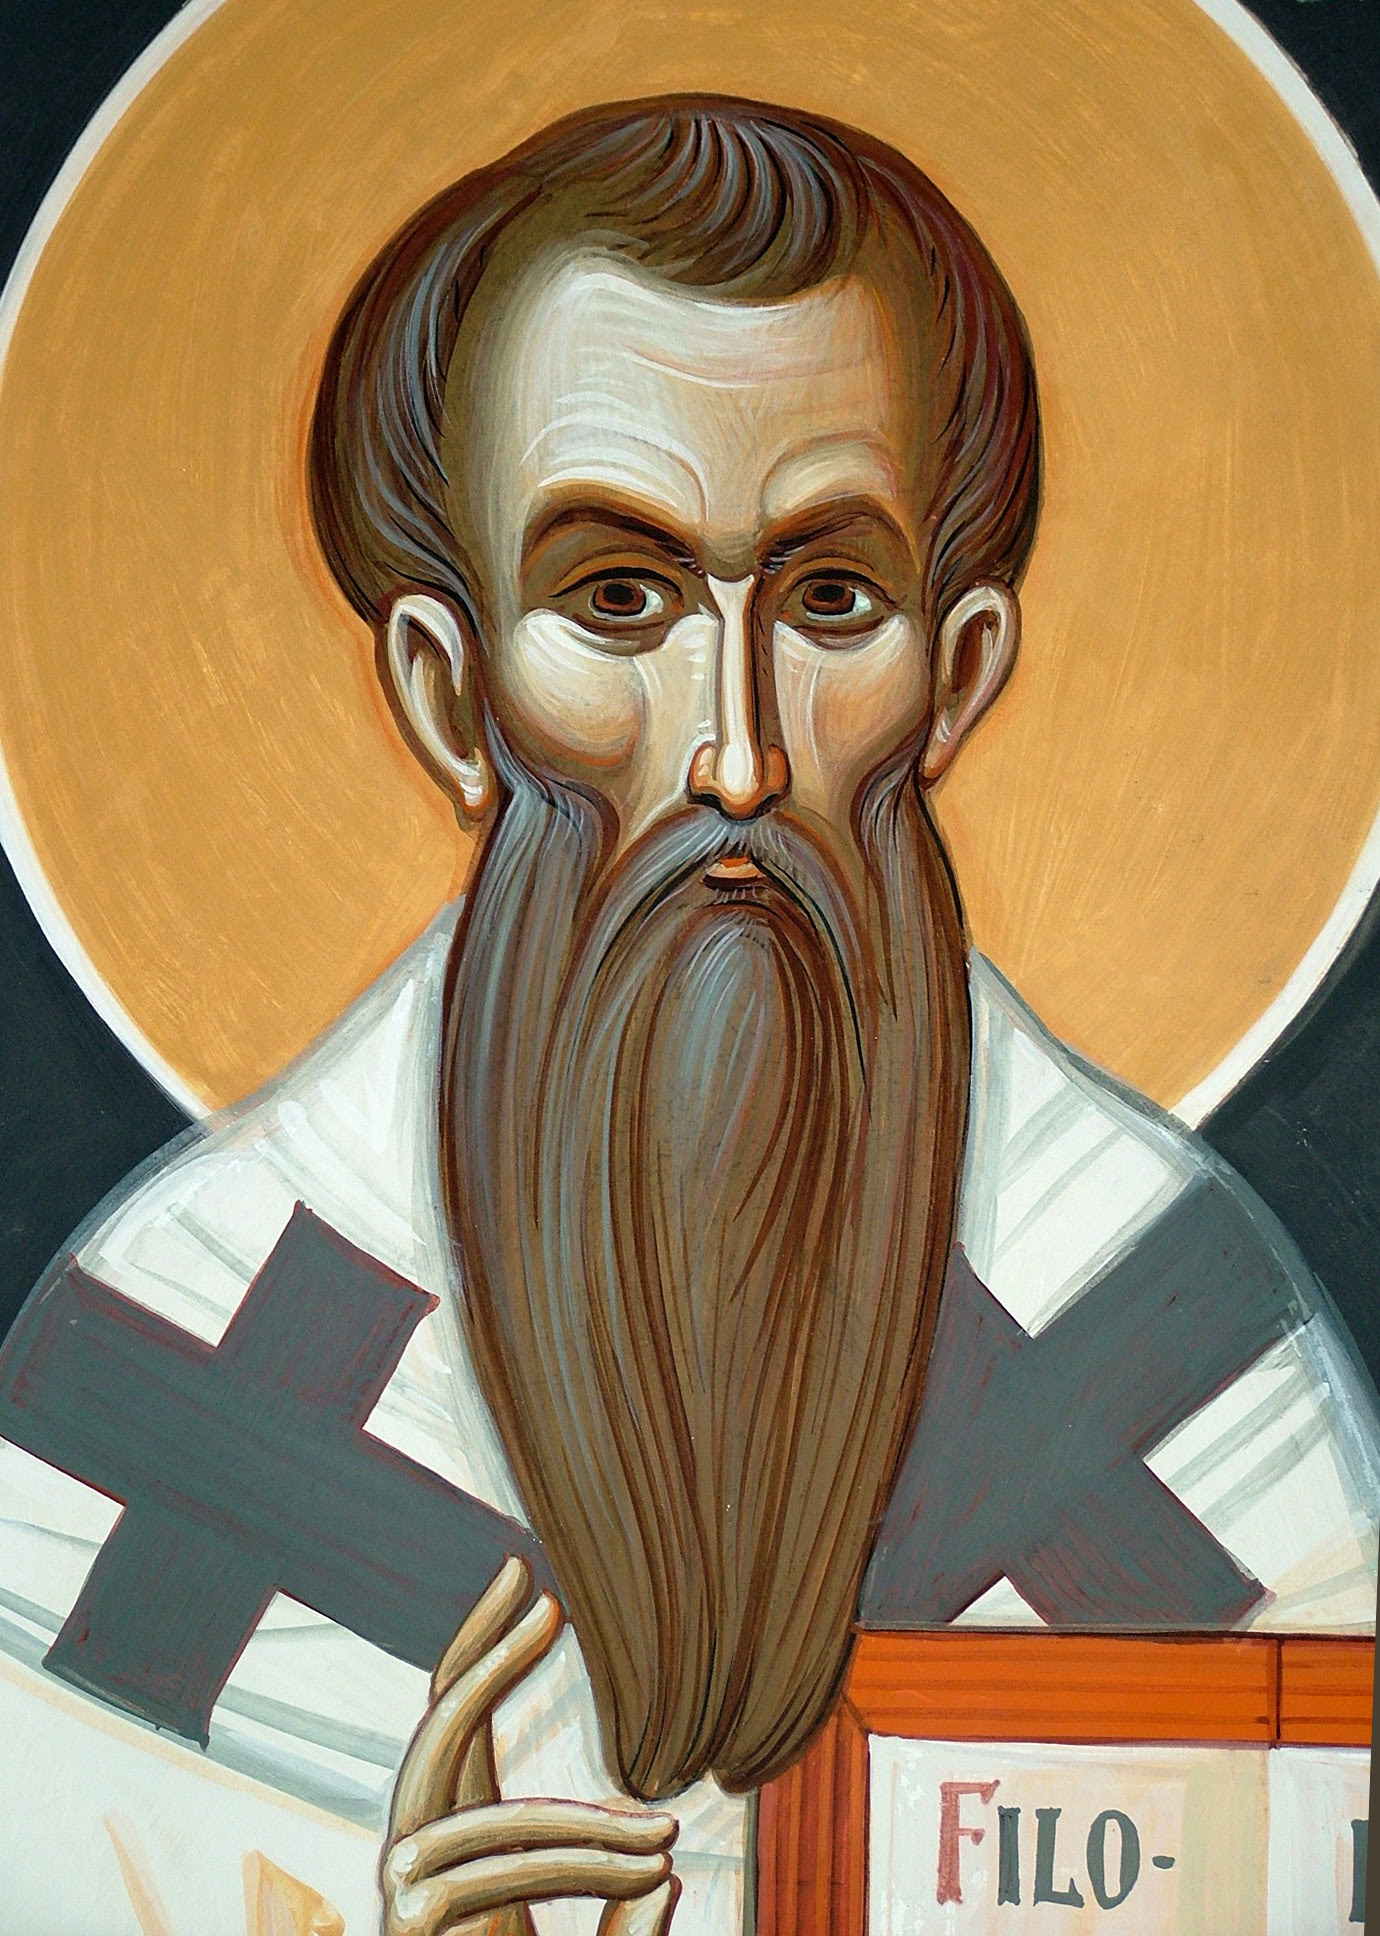 ST. BASIL the Great, Archbishop of Caesarea